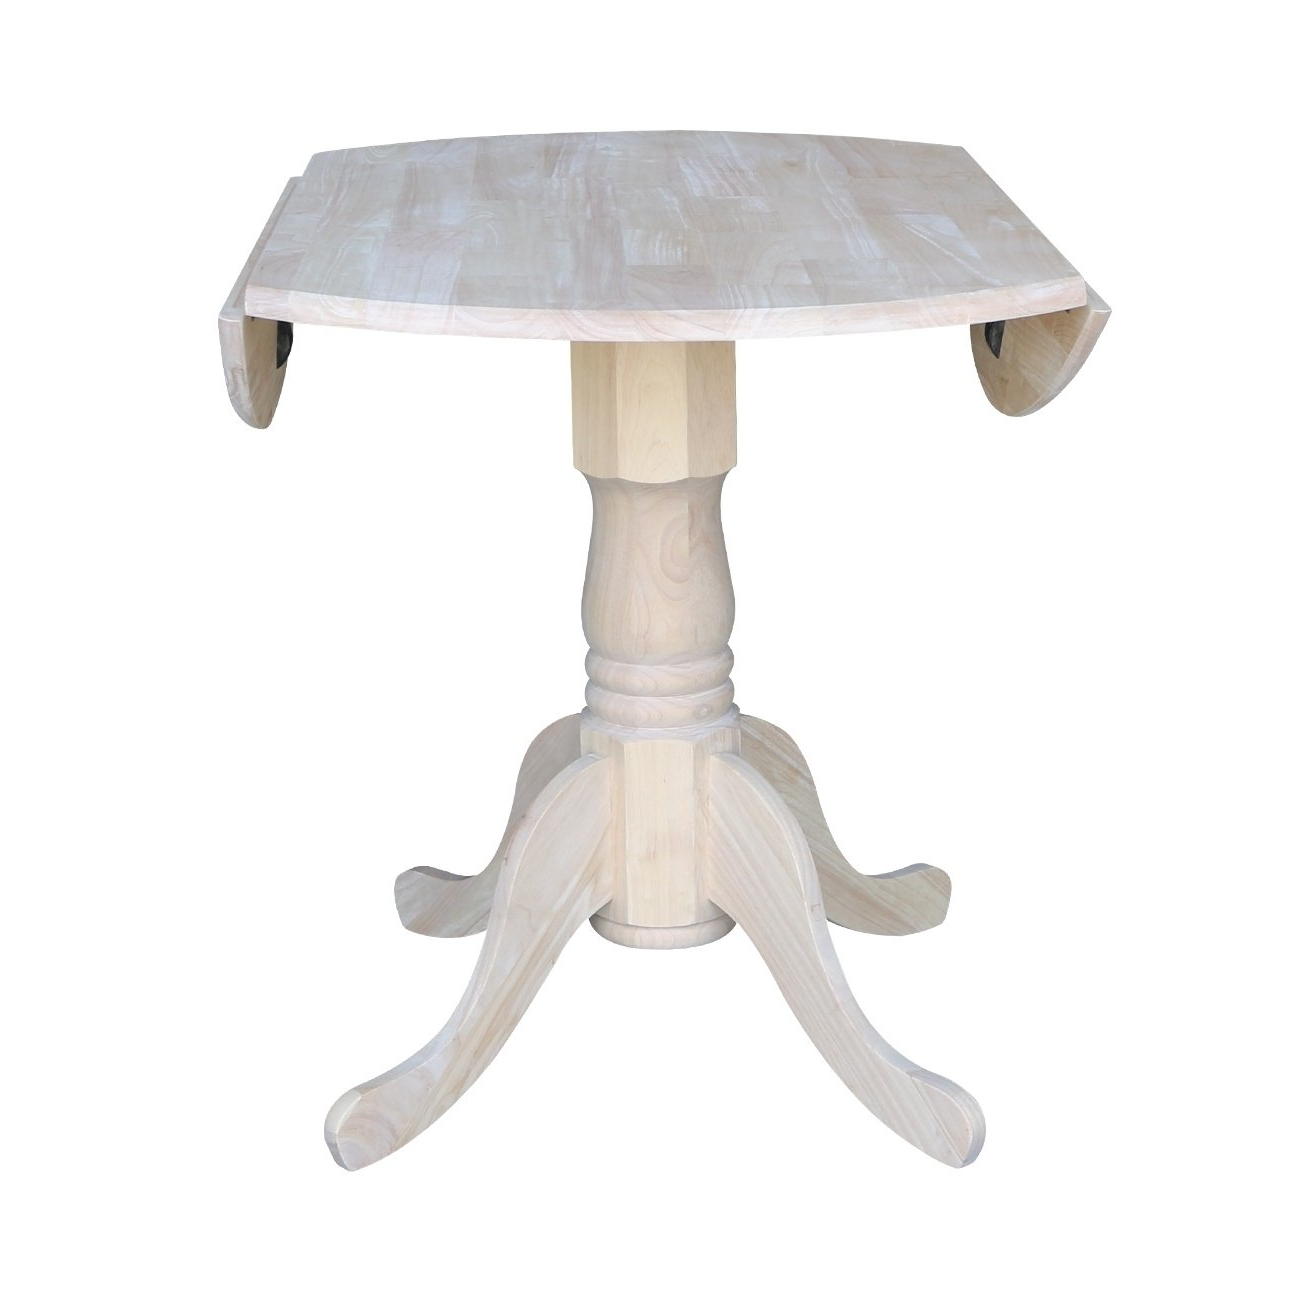 Well Known Transitional Drop Leaf Casual Dining Tables Intended For Amazon – Transitional Casual Round 36 Inch Dual Drop (View 9 of 25)